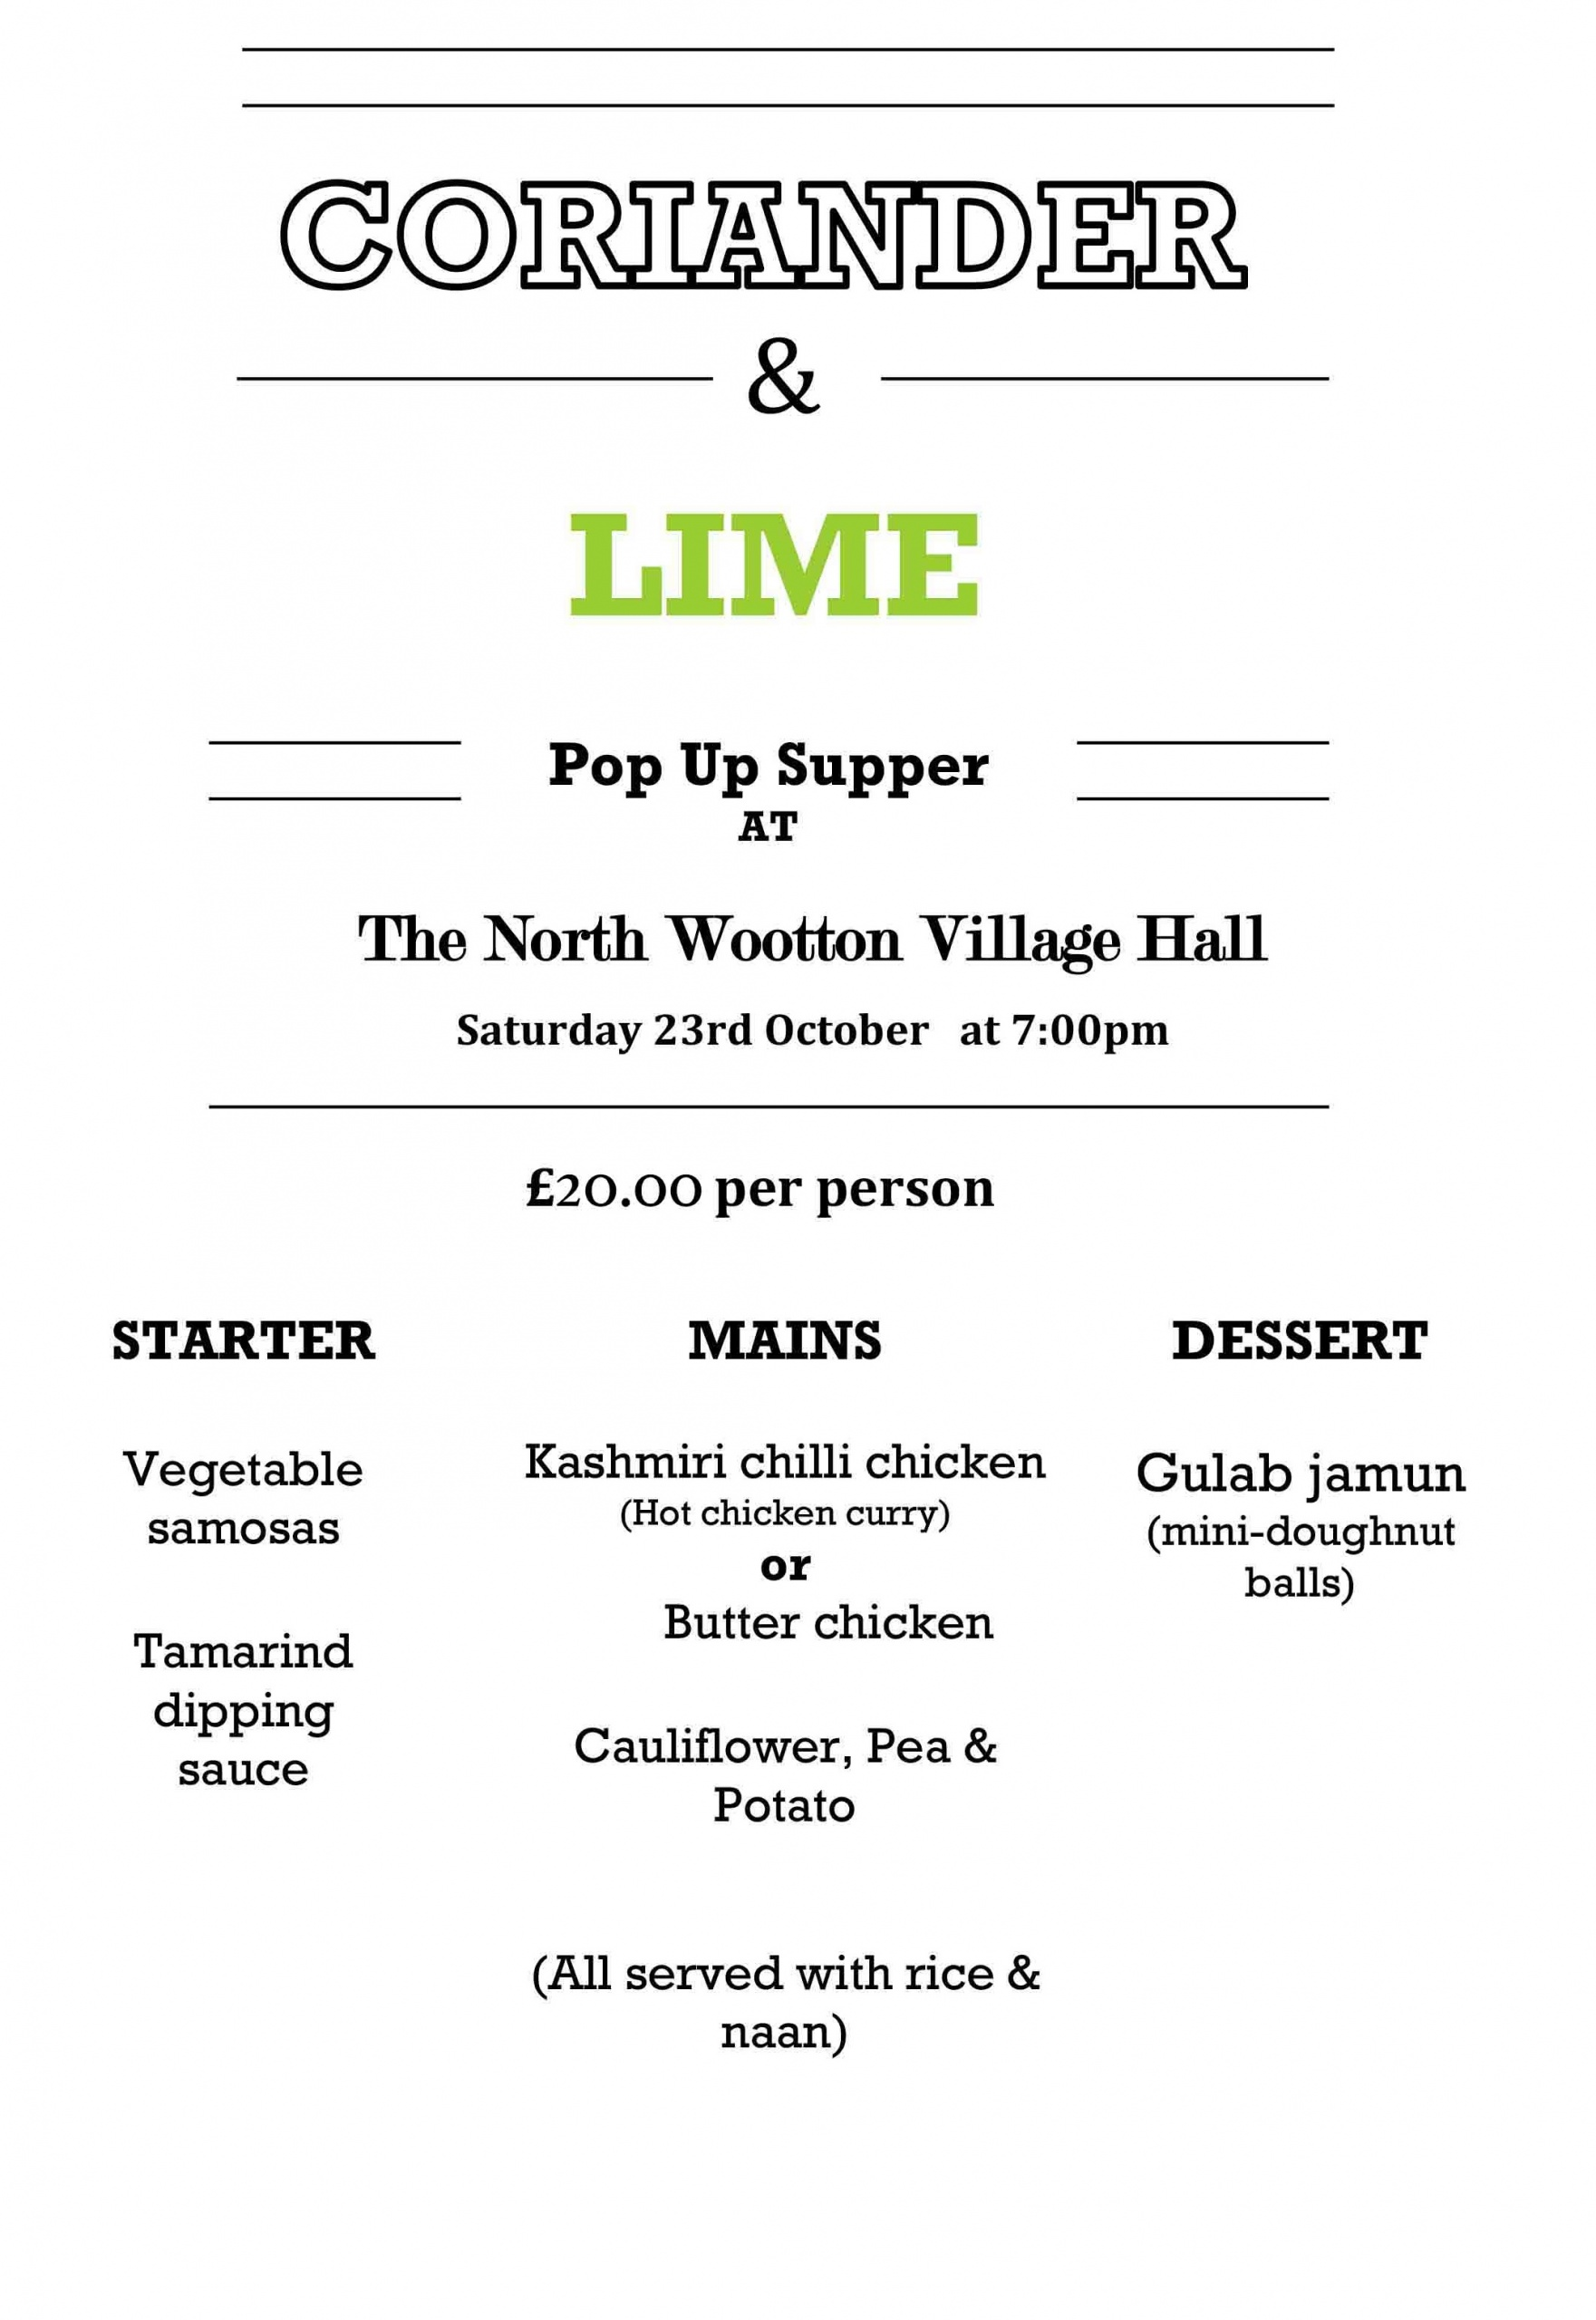 Indian Night Menu North Wootton Village Hall October 2021 Coriander and Lime